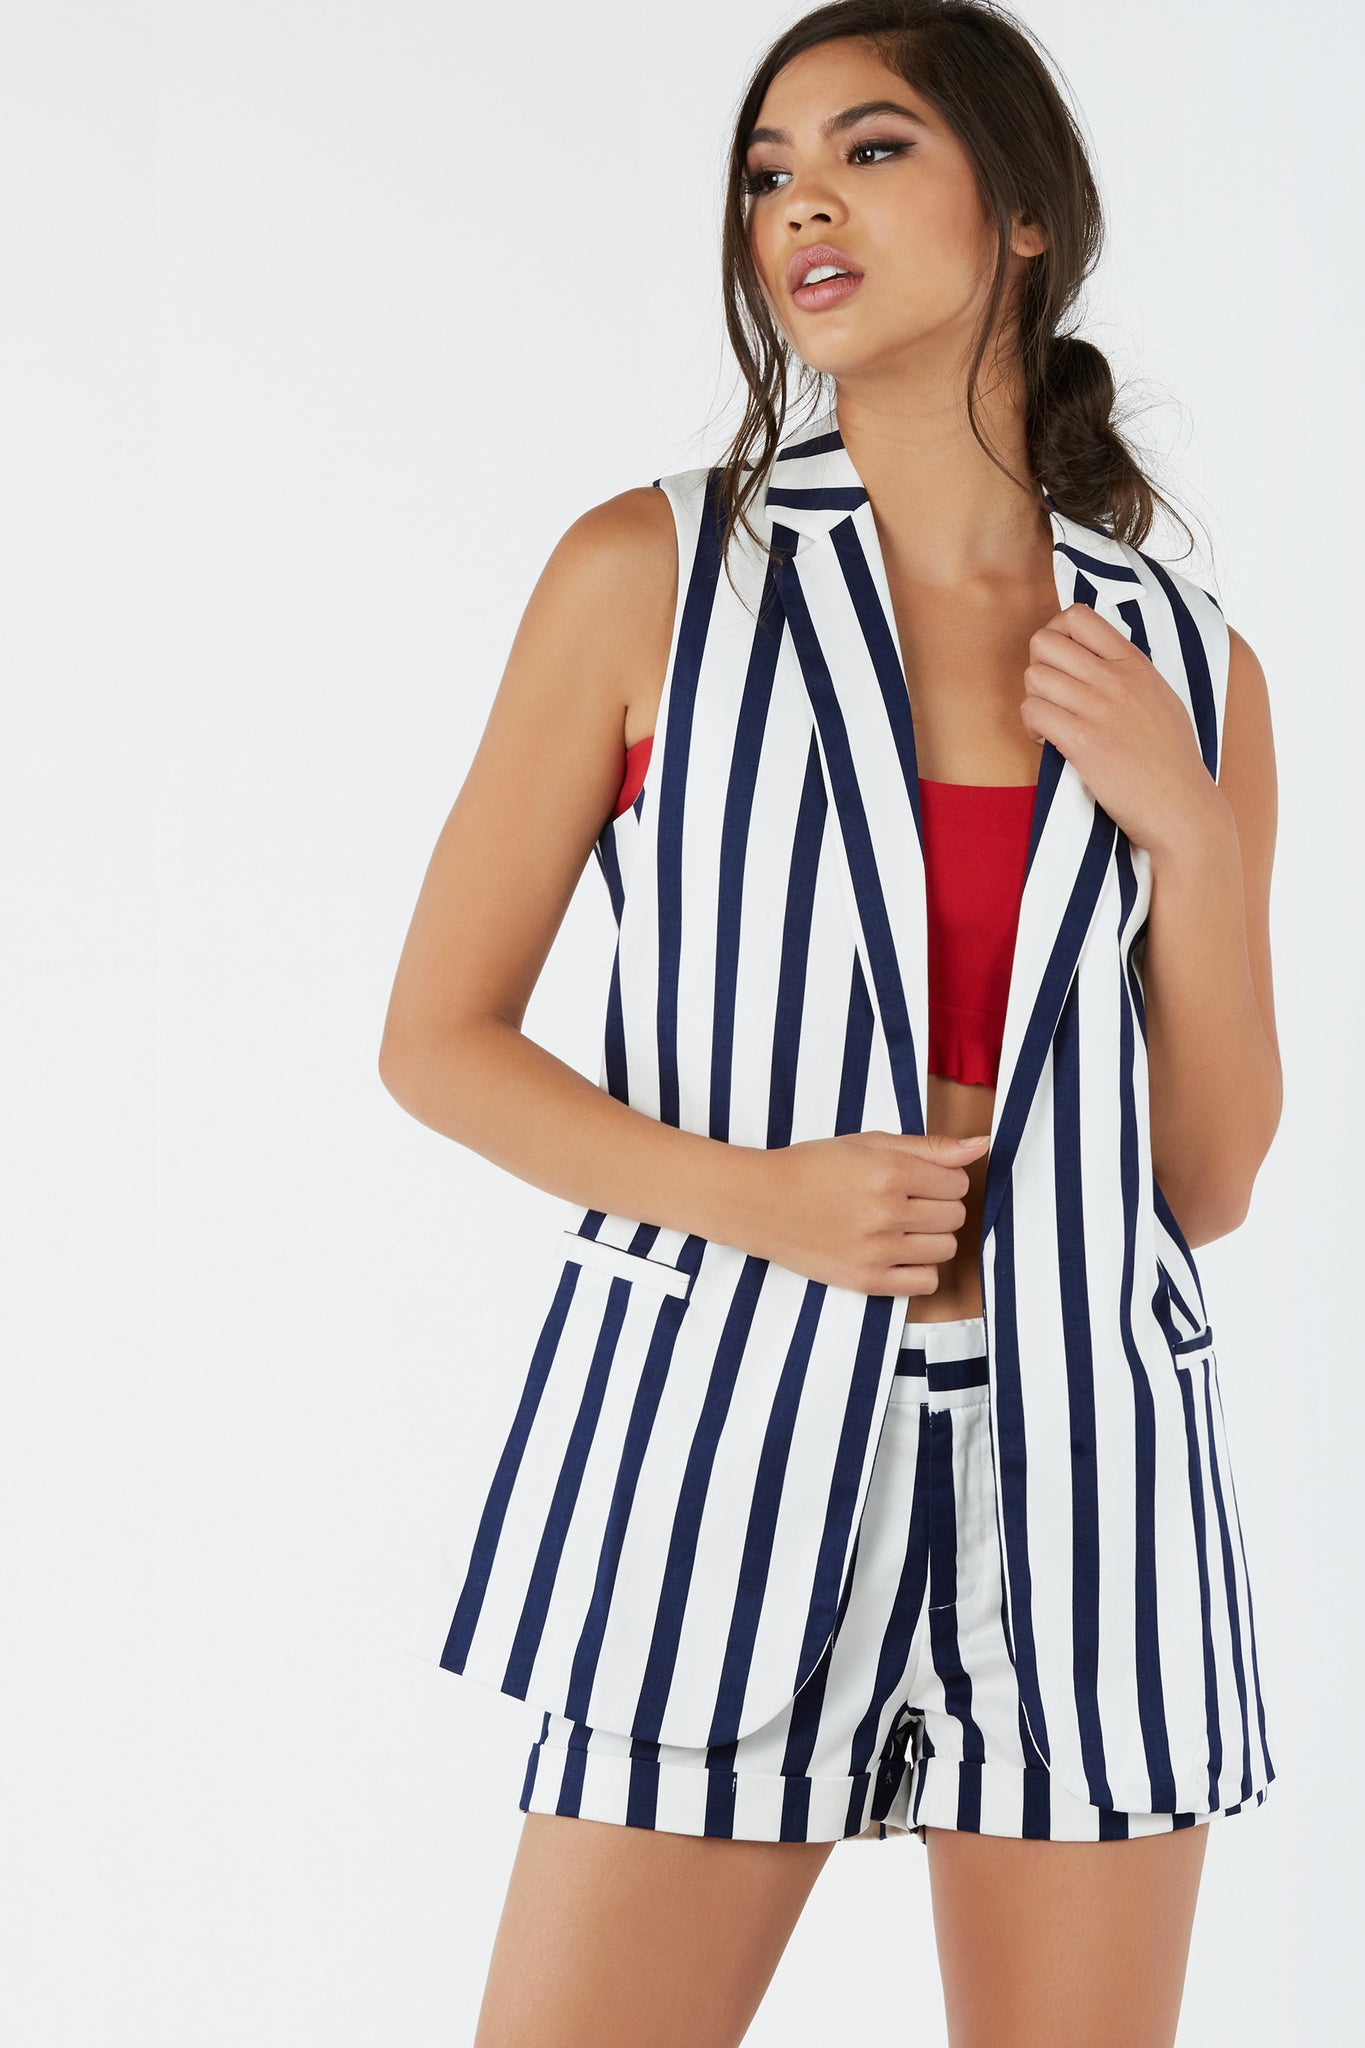 Sleeveless longline blazer with crisp collars and open front design. Faux pocket detailing with bold stripe patterns throughout.